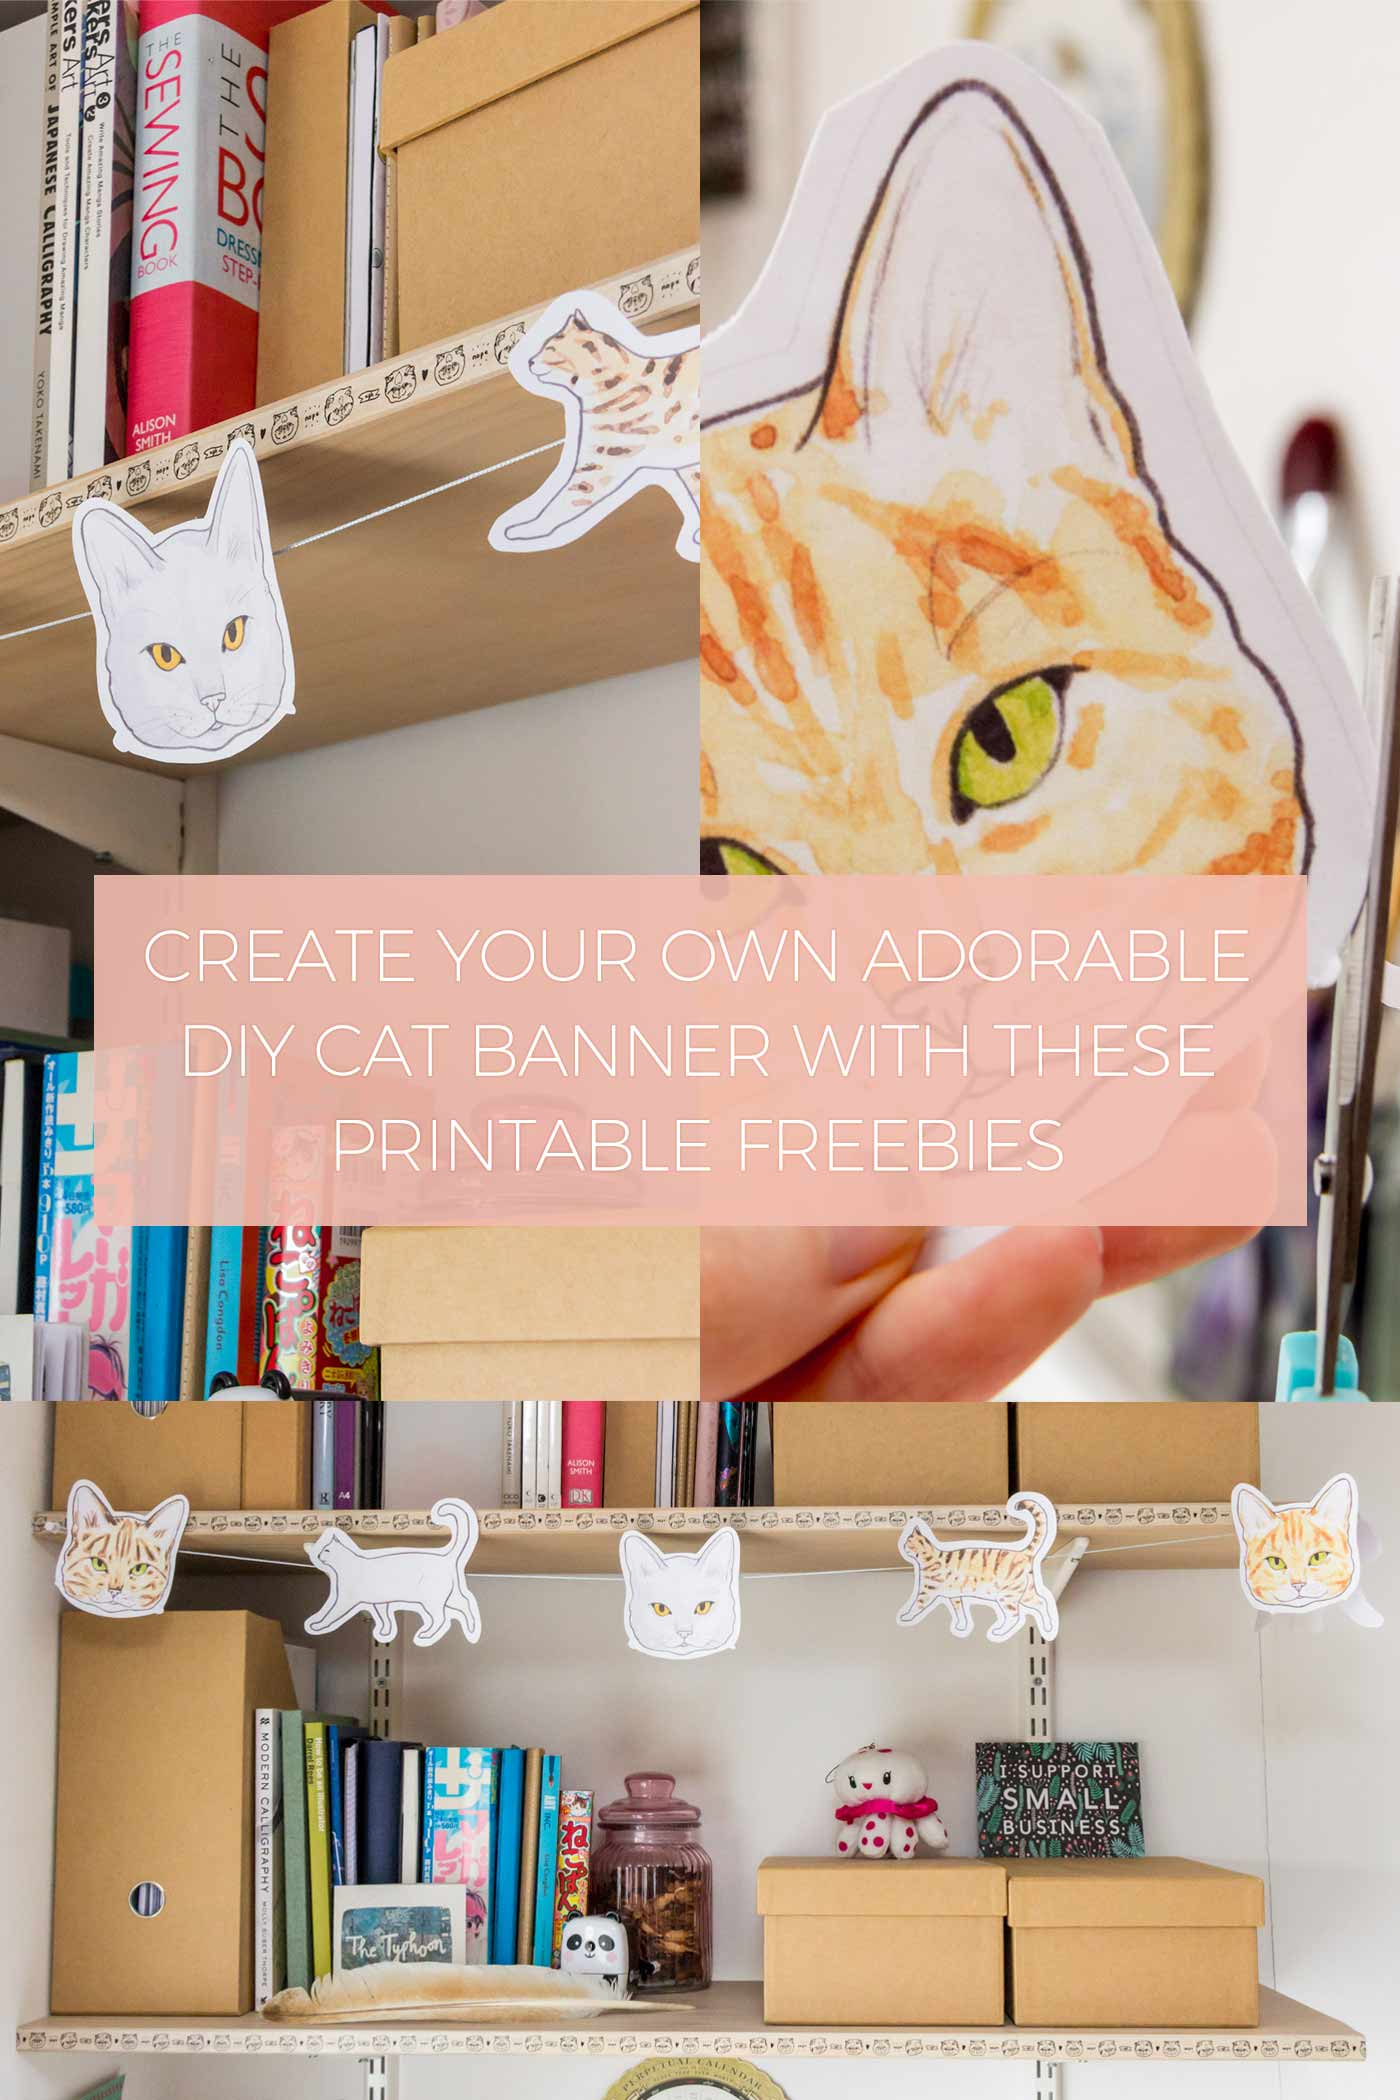 Create Your Own Adorable DIY Cat Banner with these Printable